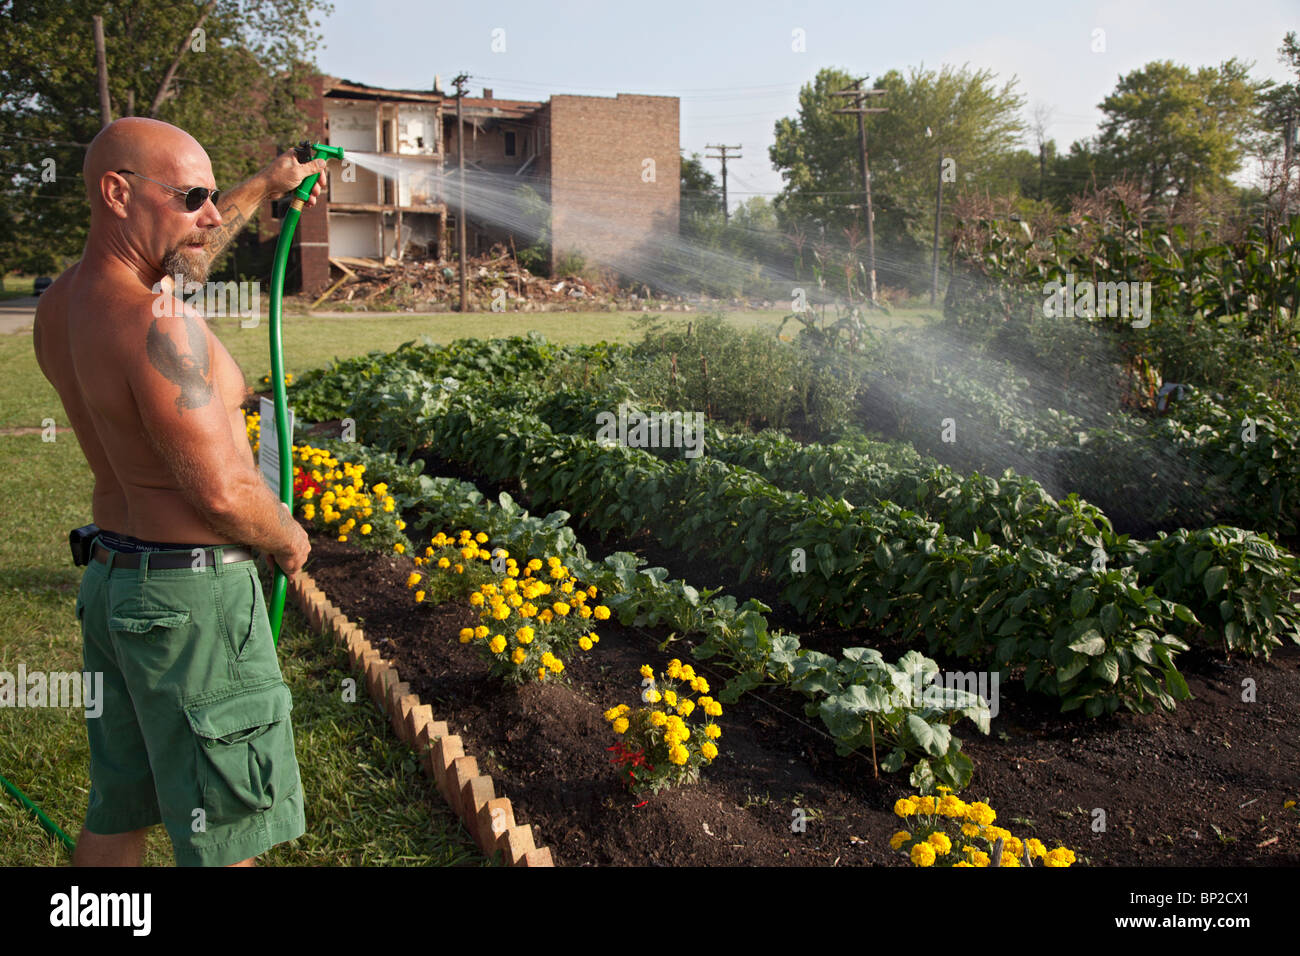 Halfway House Prison Inmates Grow Produce for Soup Kitchens - Stock Image